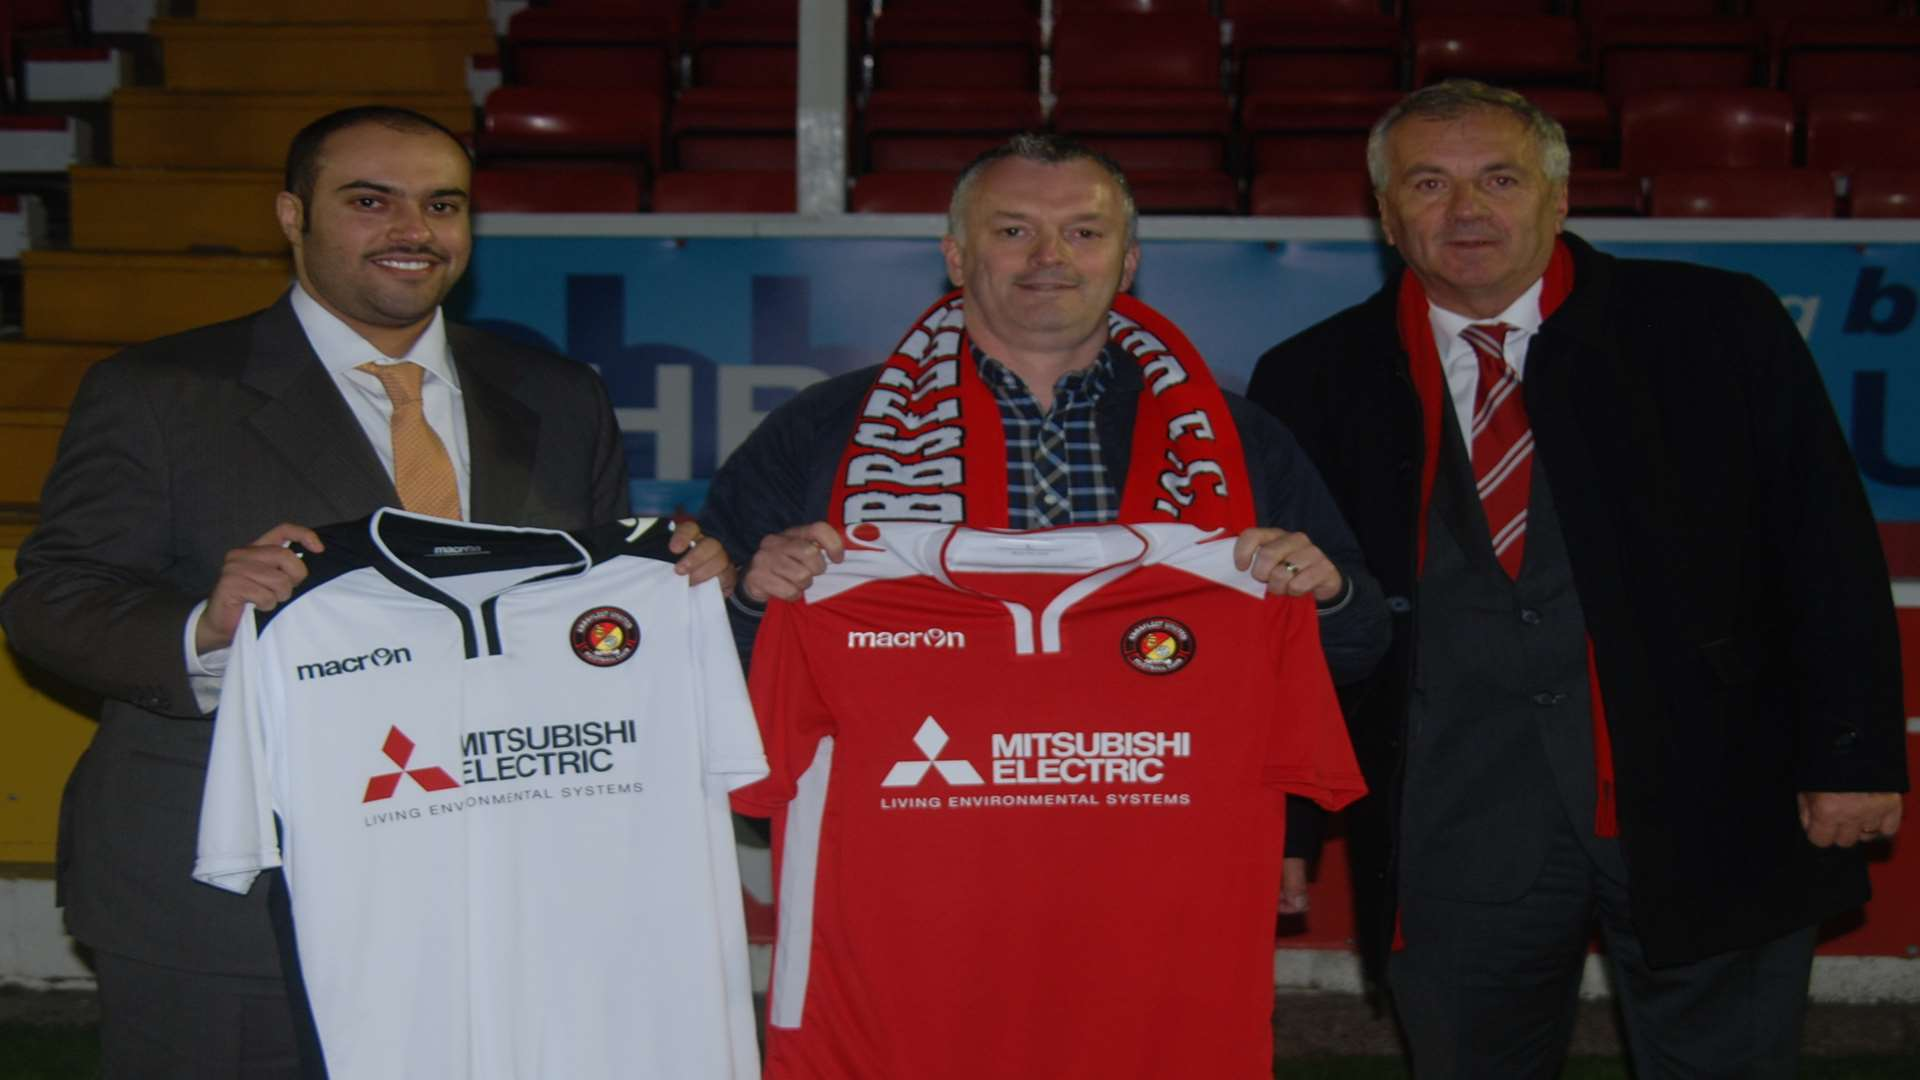 Ebbsfleet United chairman Dr Abdulla Al-Humaidi, Mitsubishi Electric's Steve Fleming and Fleet vice-chairman Peter Varney